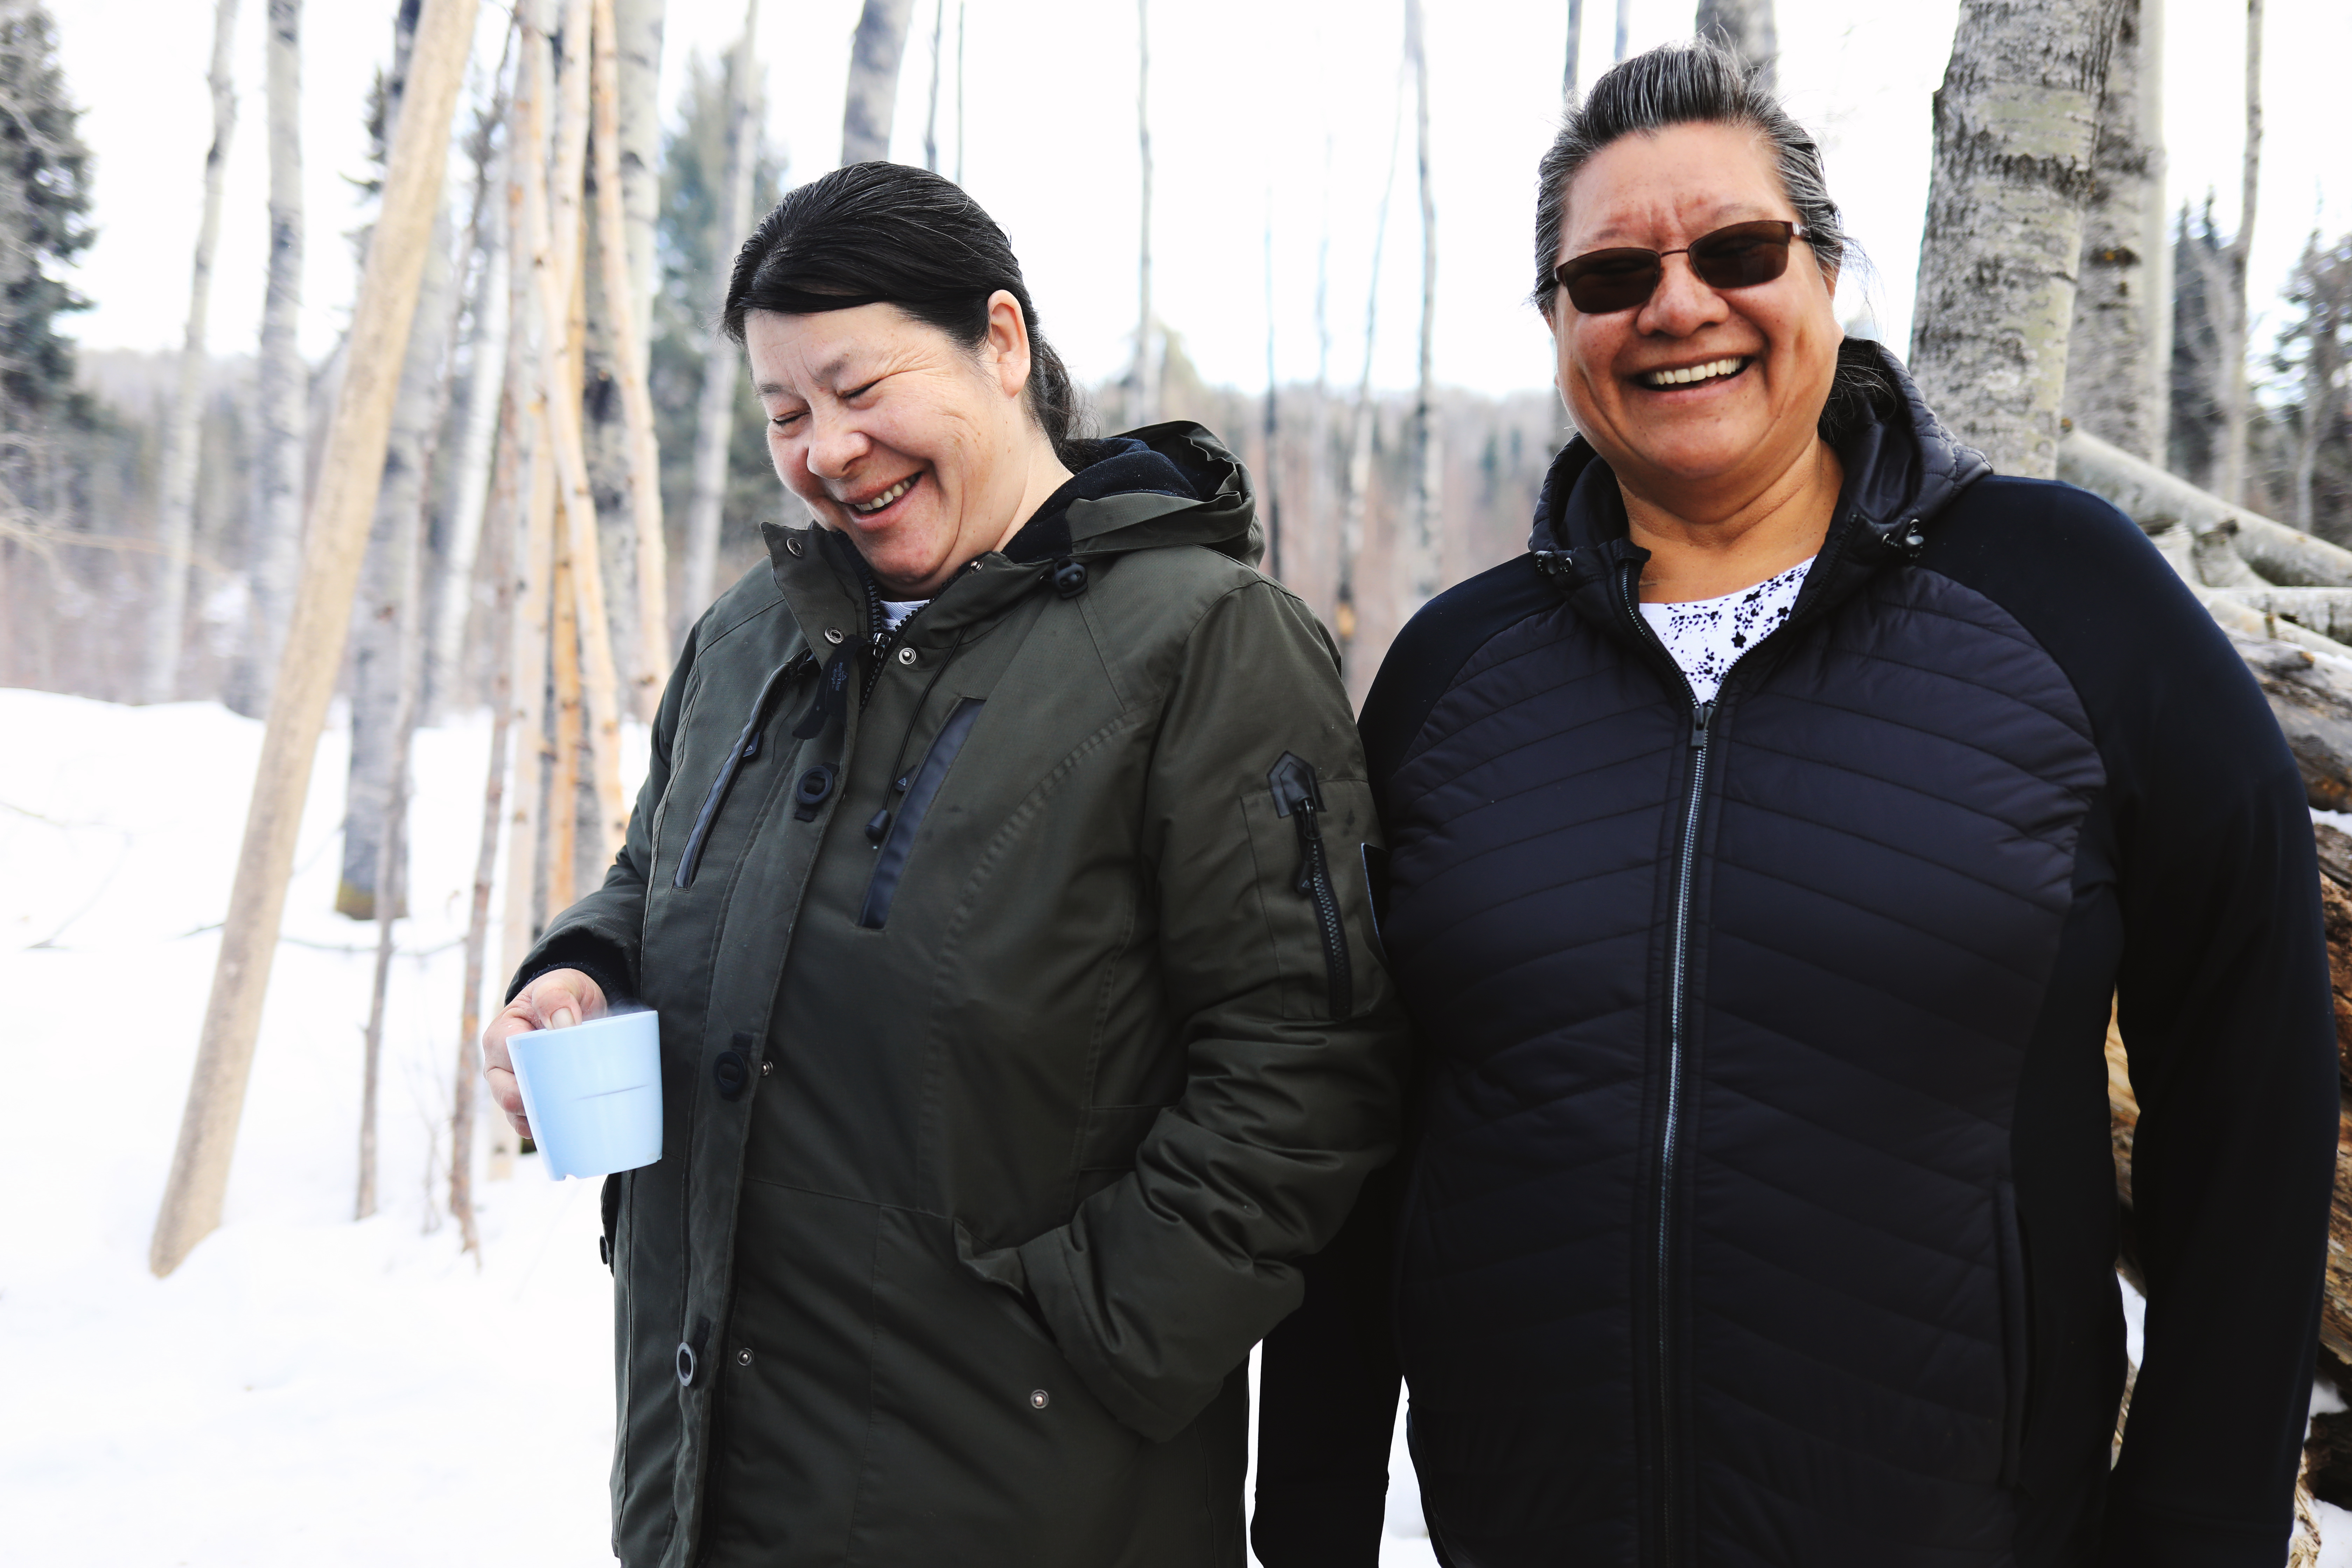 Susan McLeod and Isabelle Hardlotte share a laugh out at the school system's land-based education site. Hardlotte said she would stay out in nature all day if she could. (Heidi Atter/CBC)